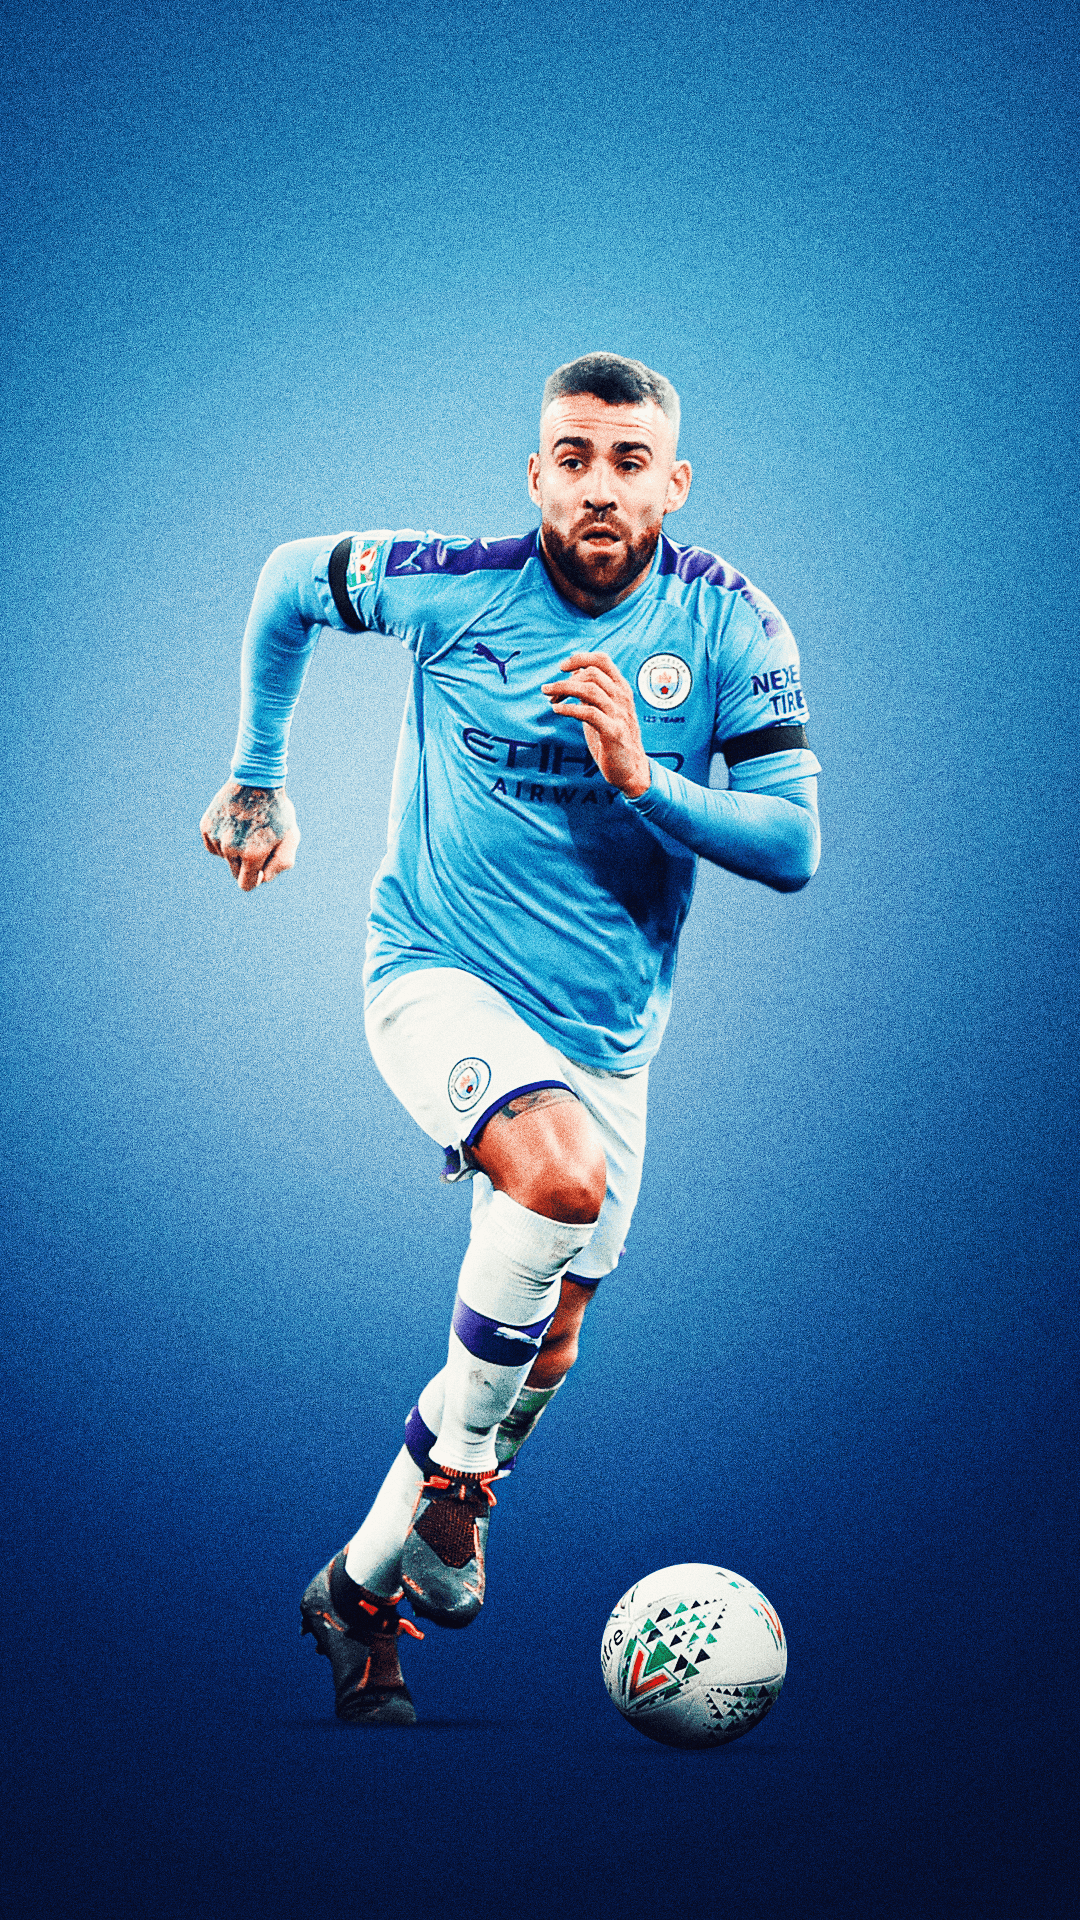 Manchester City 2020 Wallpapers Wallpaper Cave